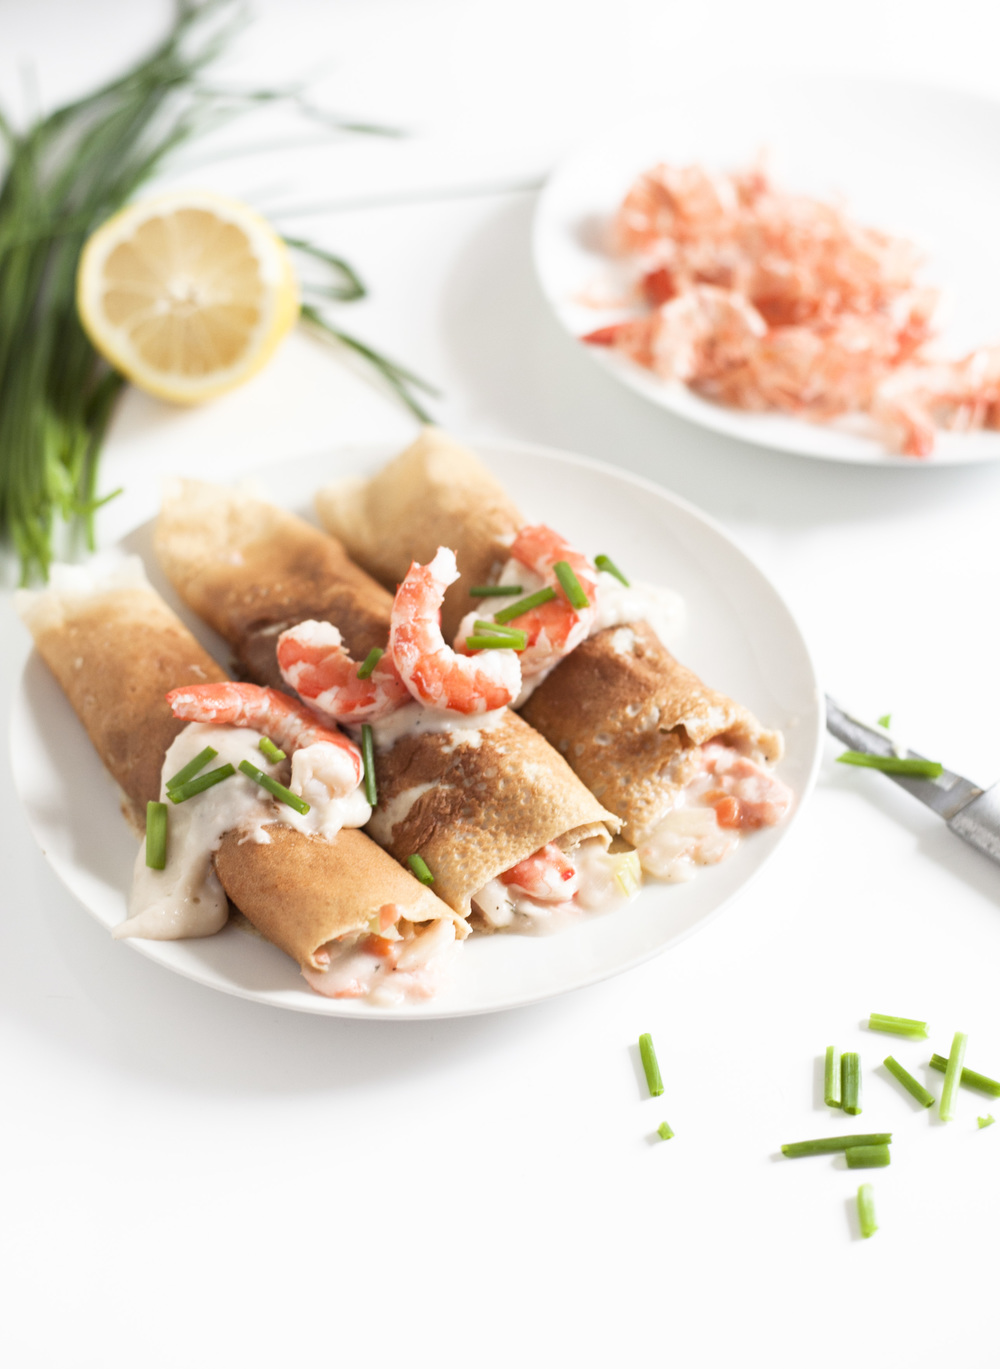 Whole Wheat Protein Packed Seafood Crepes